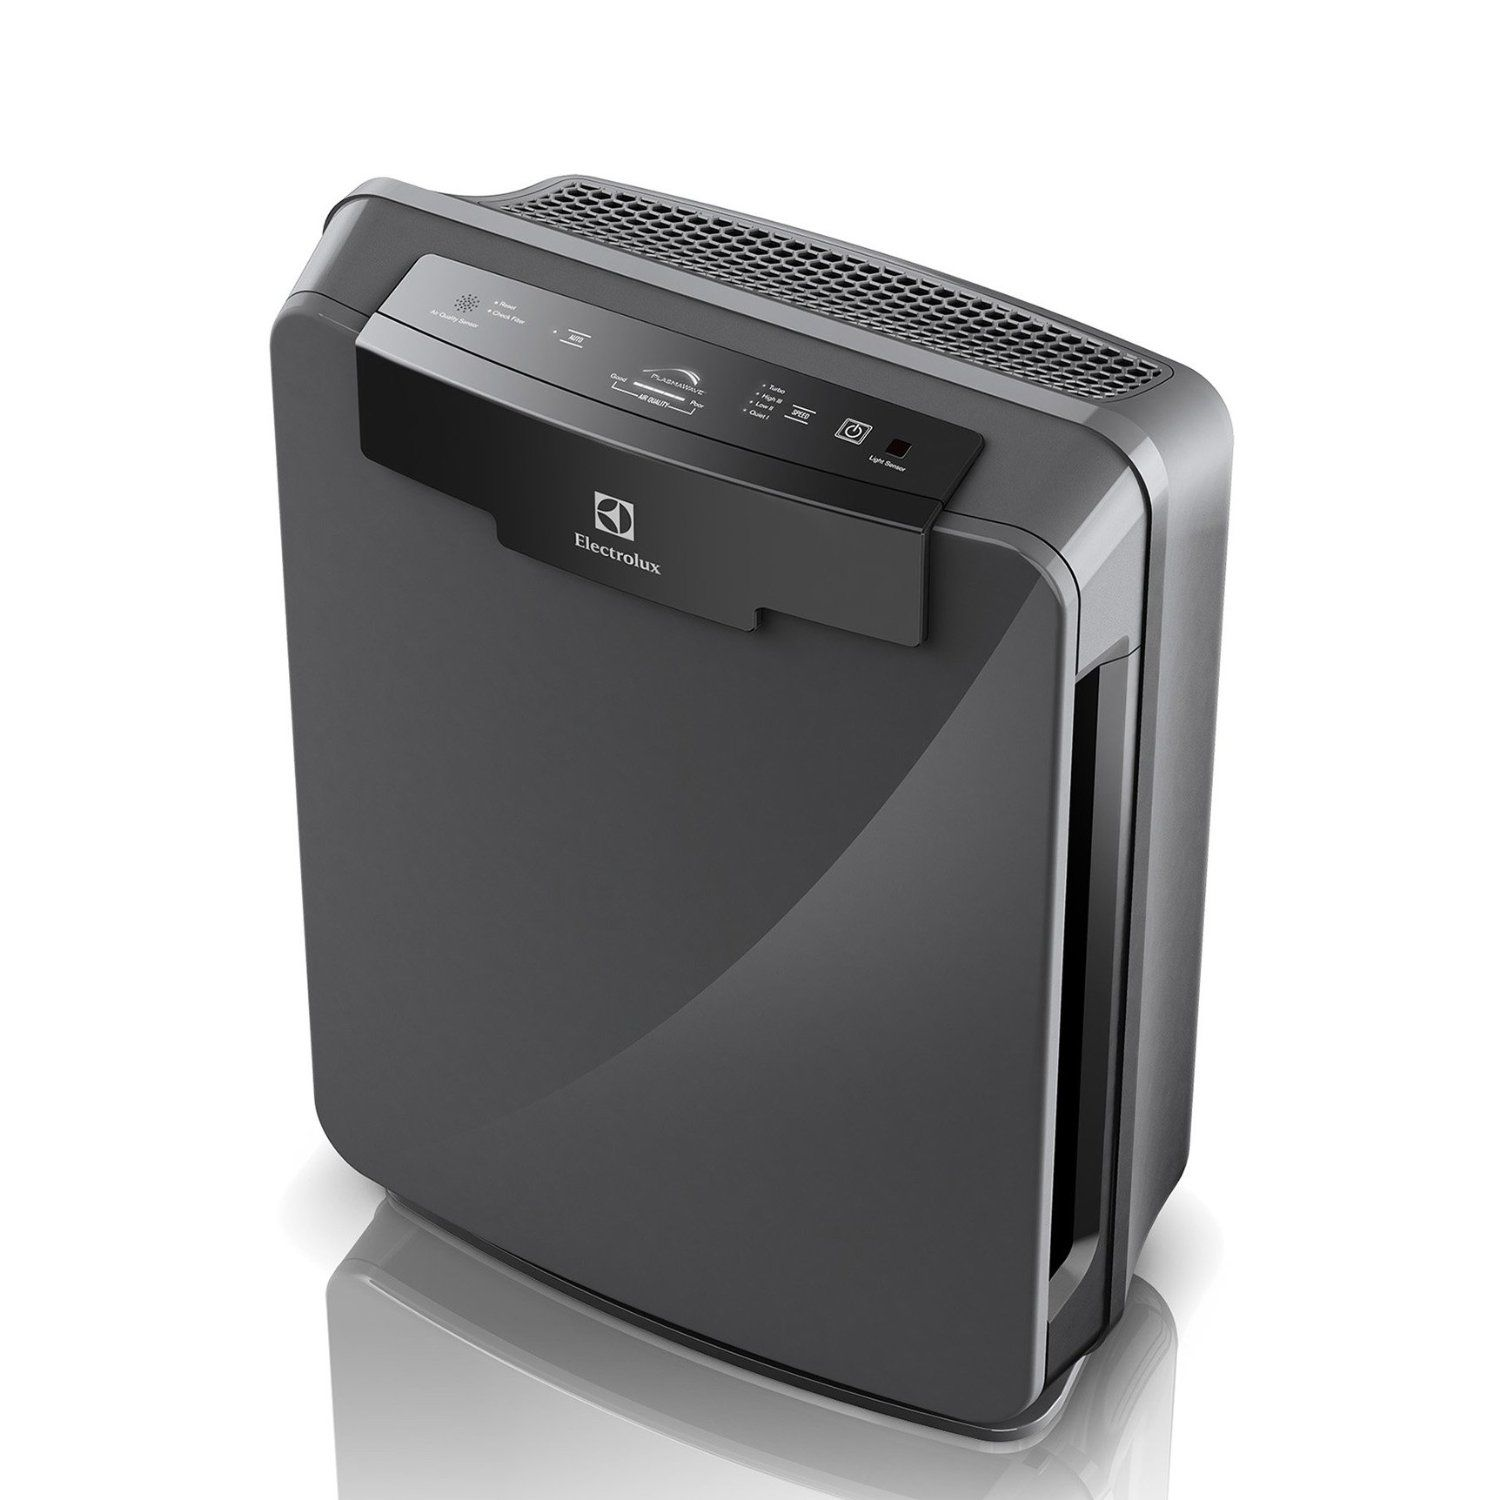 The Electrolux PureOxygen Allergy 450 Ultra Allergen